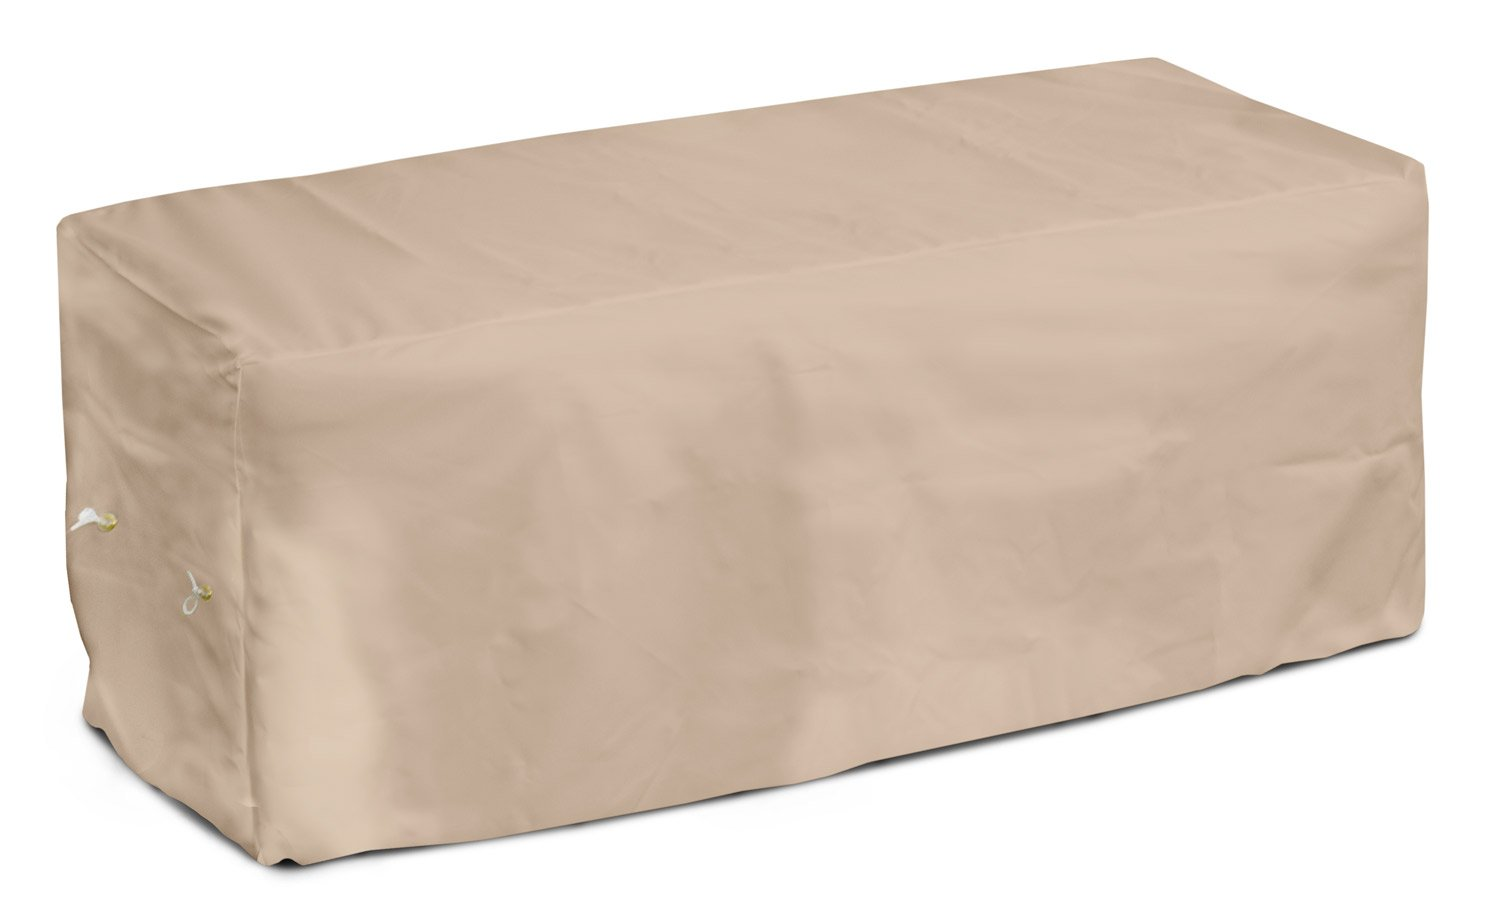 KOVERROOS Weathermax 44207 8-Feet Bench Cover, 96-Inch Width by 25-Inch Diameter by 36-Inch Height, Toast